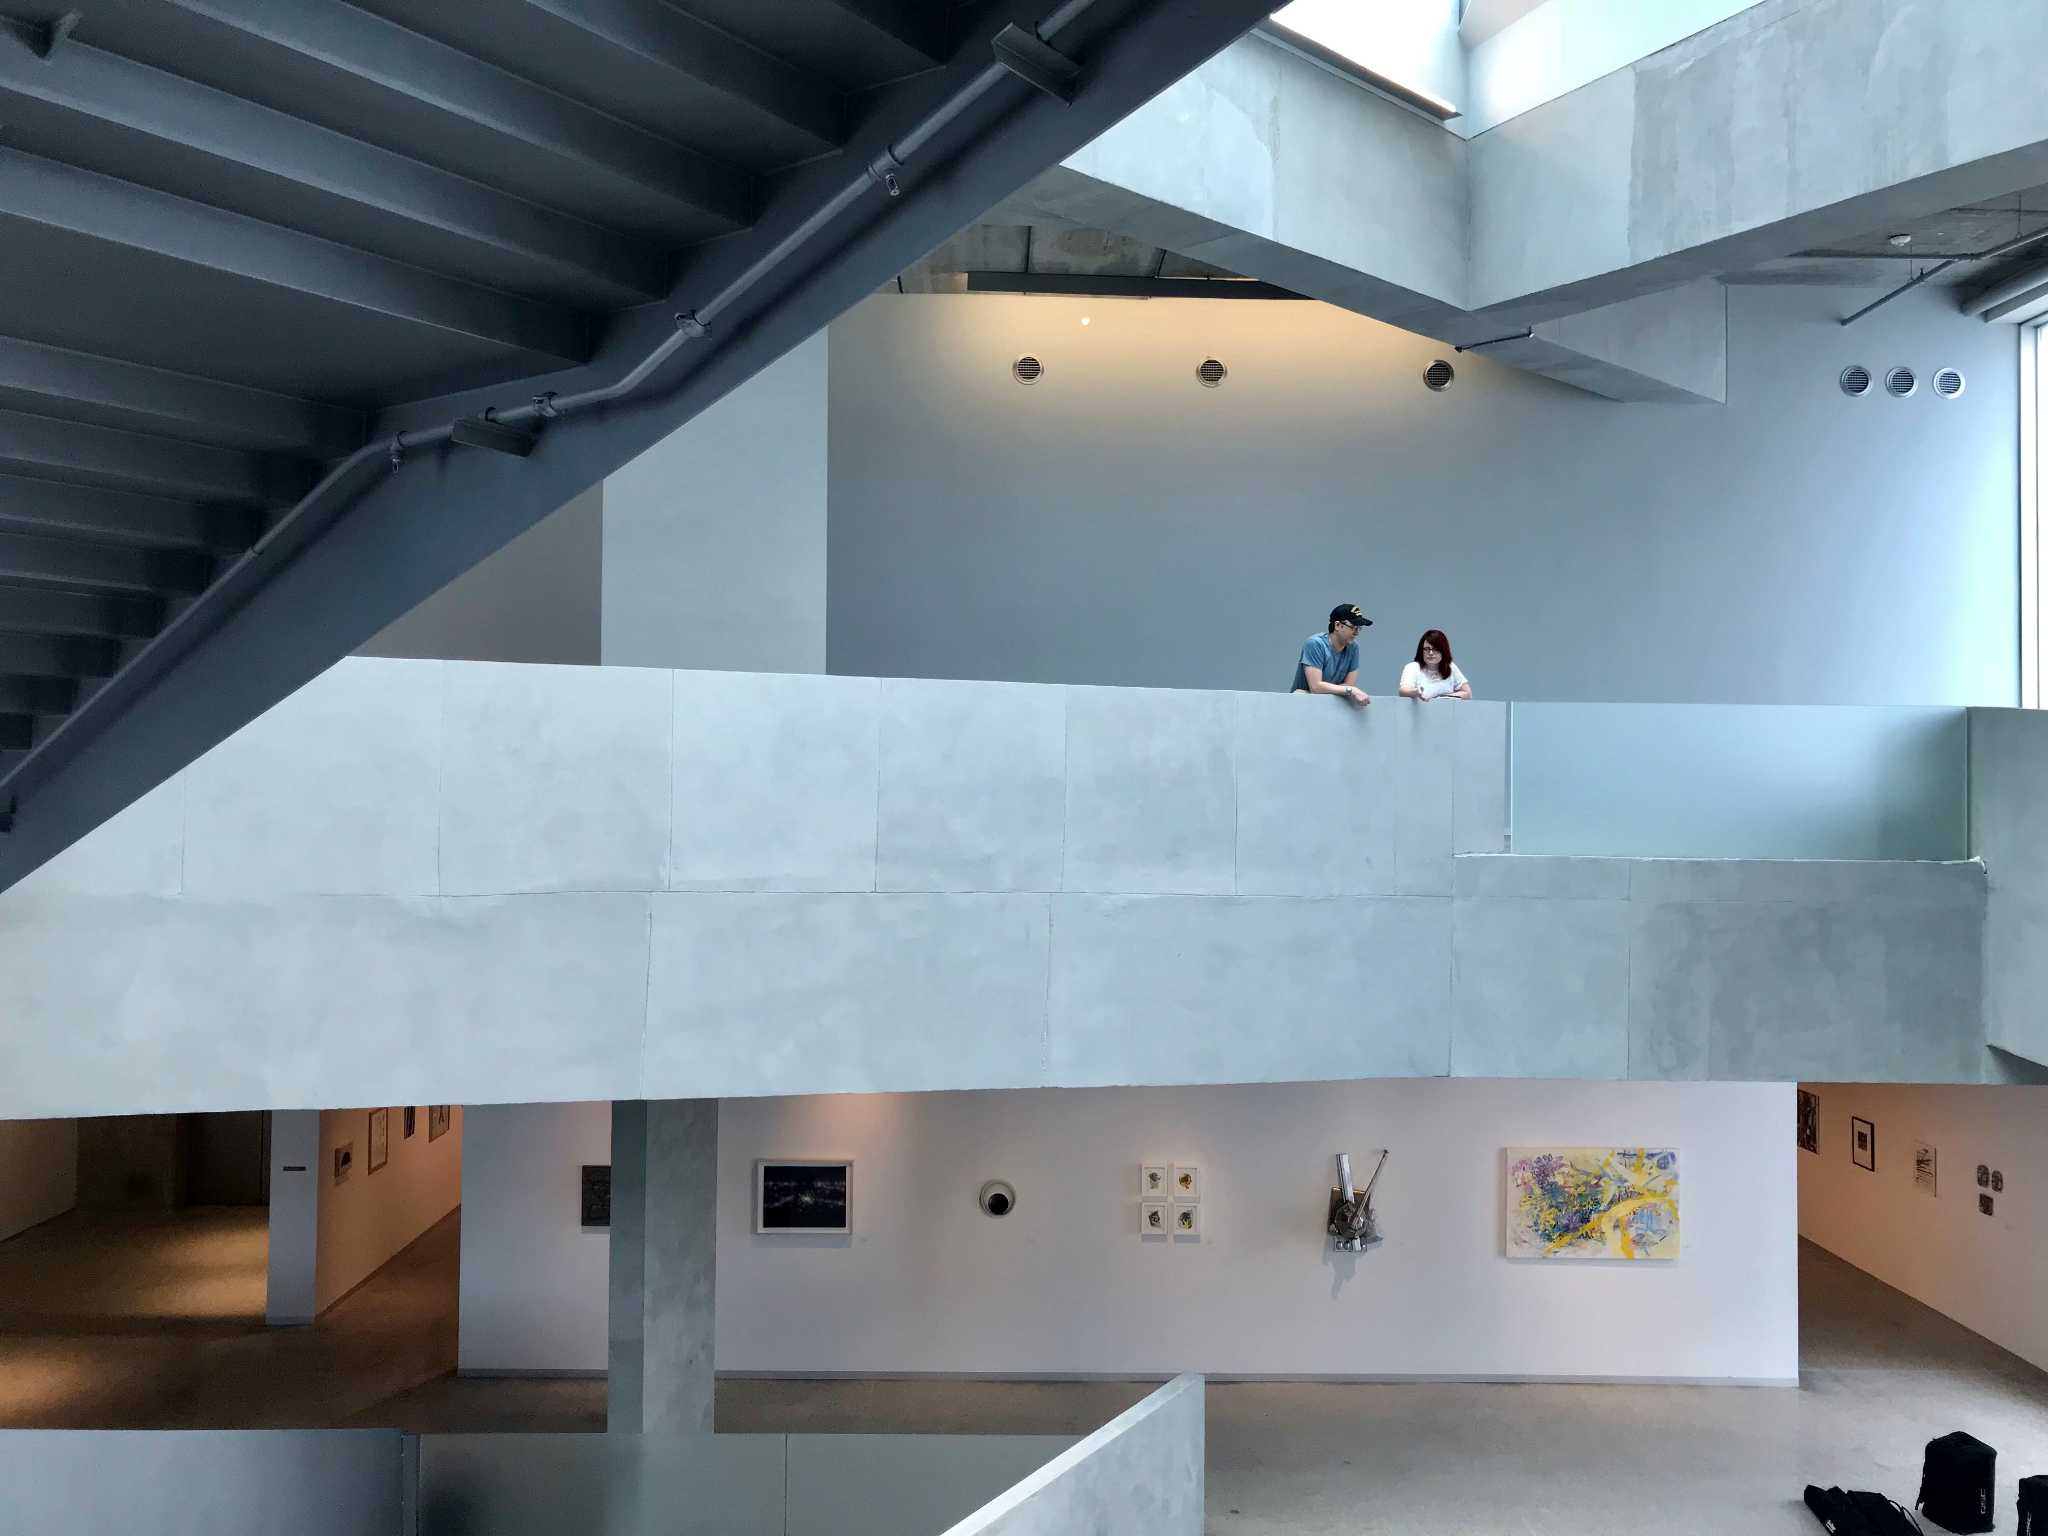 glassell school of art gives houston a grand new public space